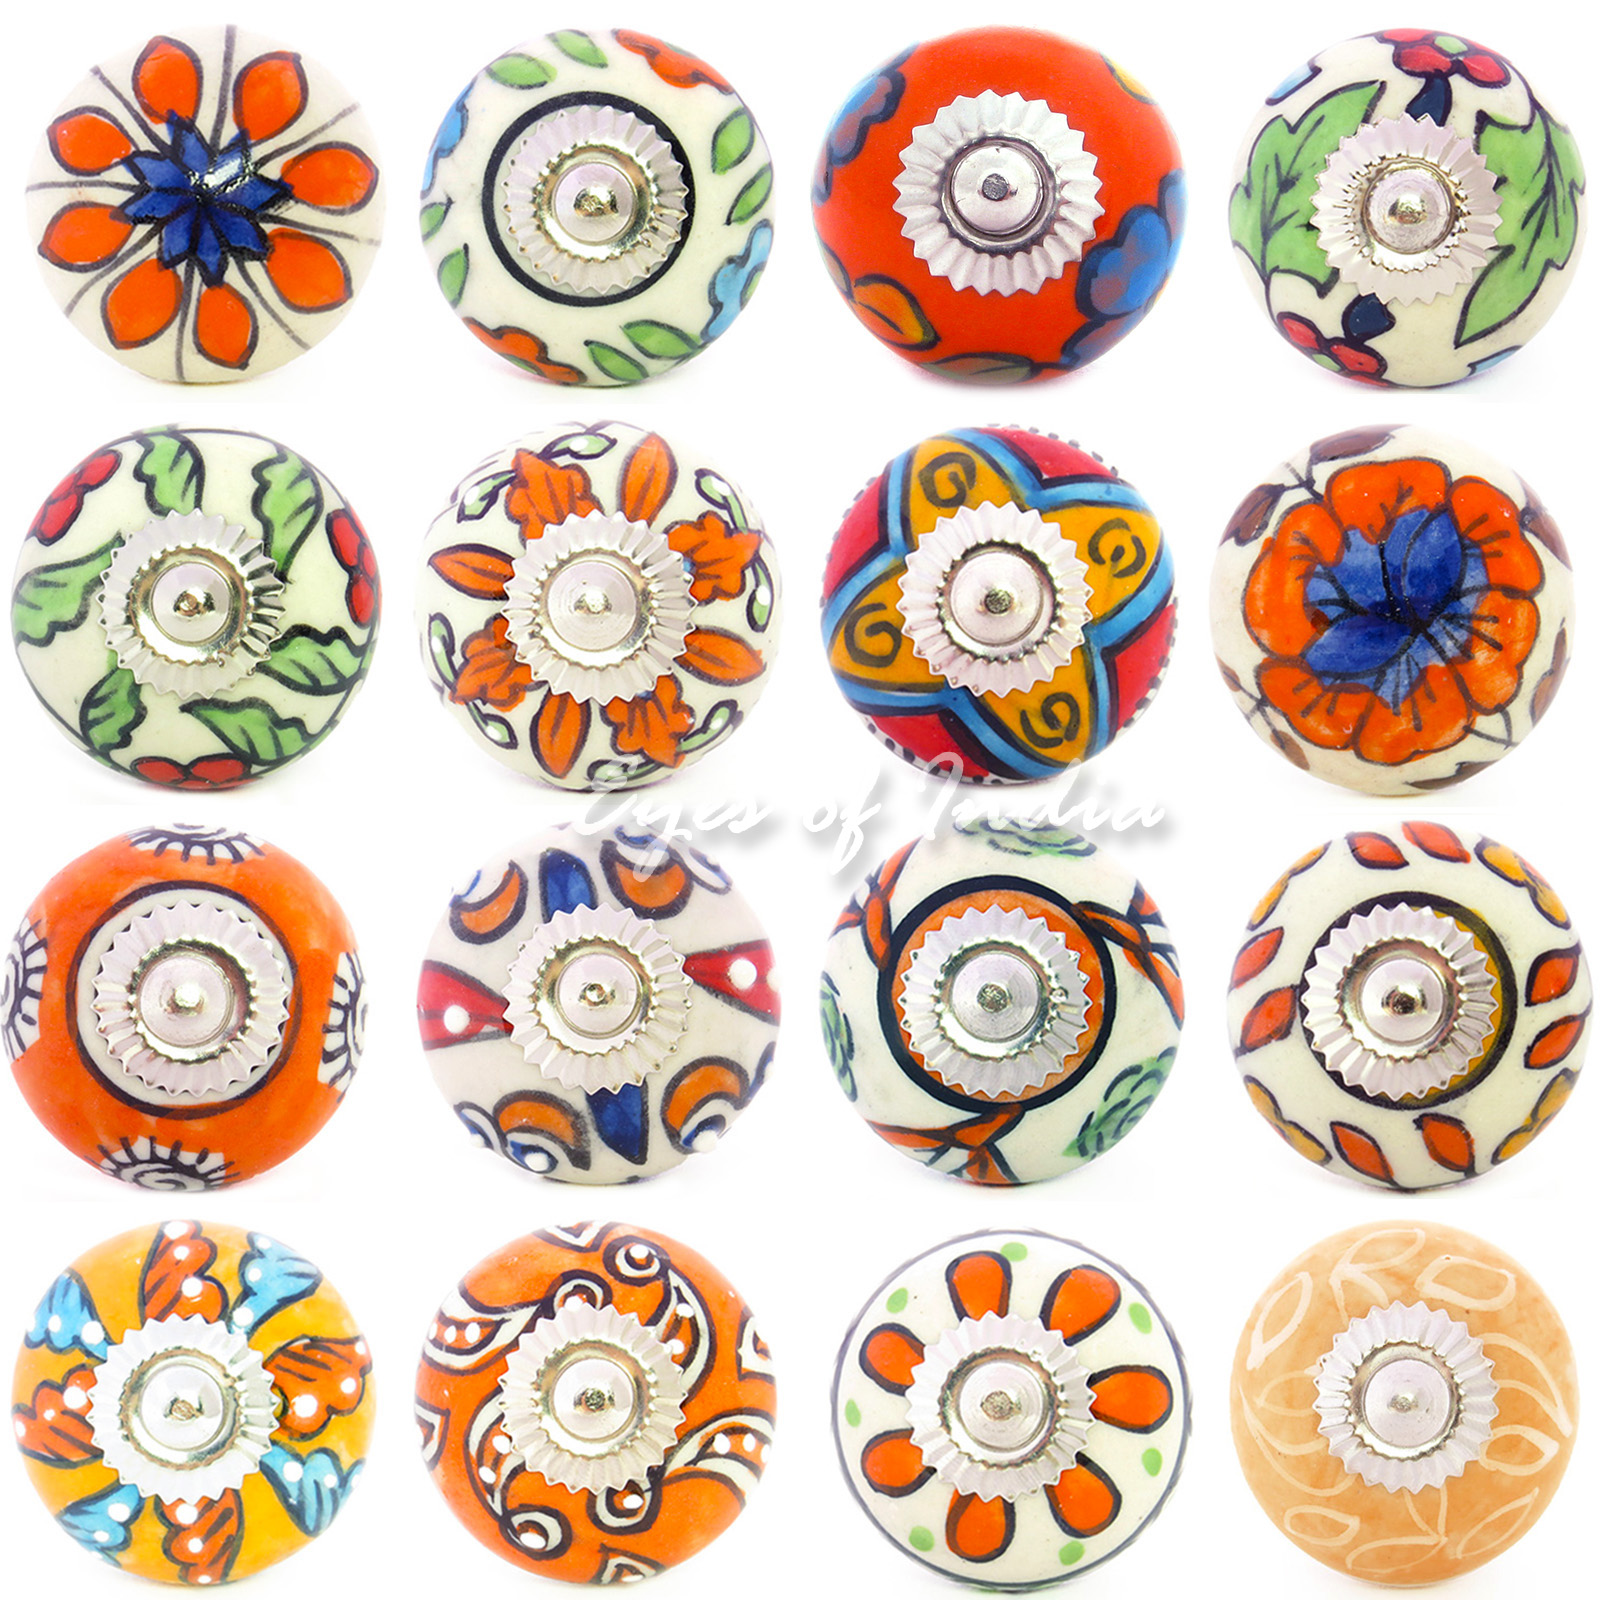 High Quality Sentinel Orange Ceramic Cupboard Cabinet Door Dresser Knobs Pulls Decorative  Shabby Chic